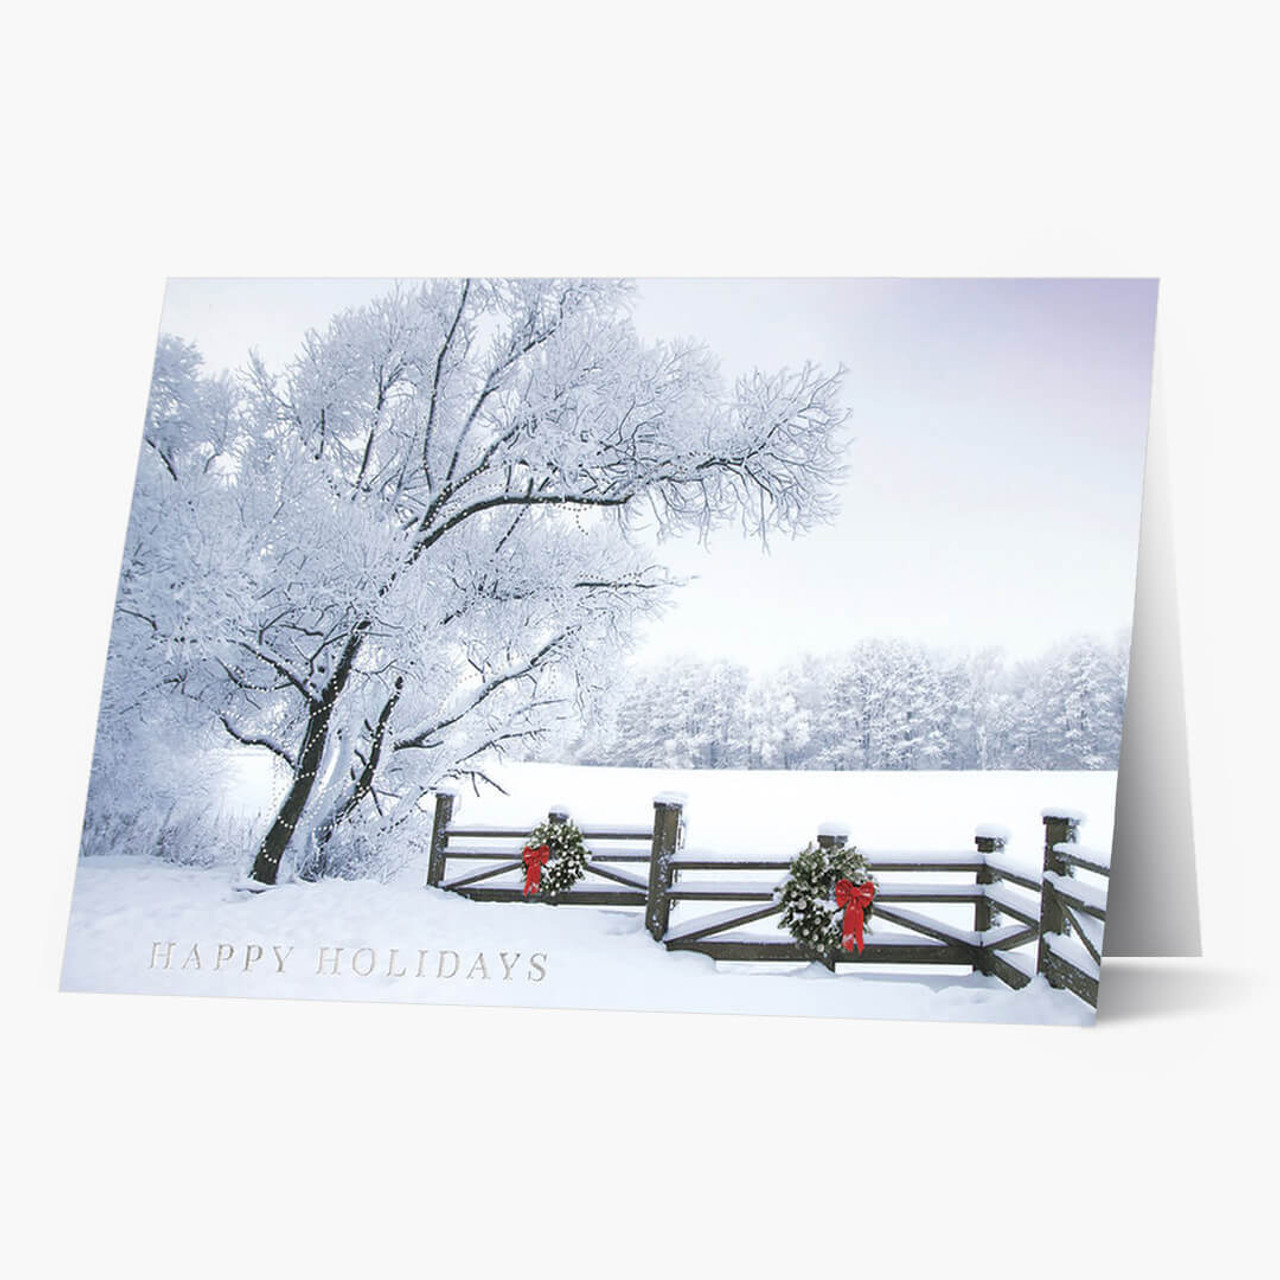 Frosty Winter Landscape Christmas Card